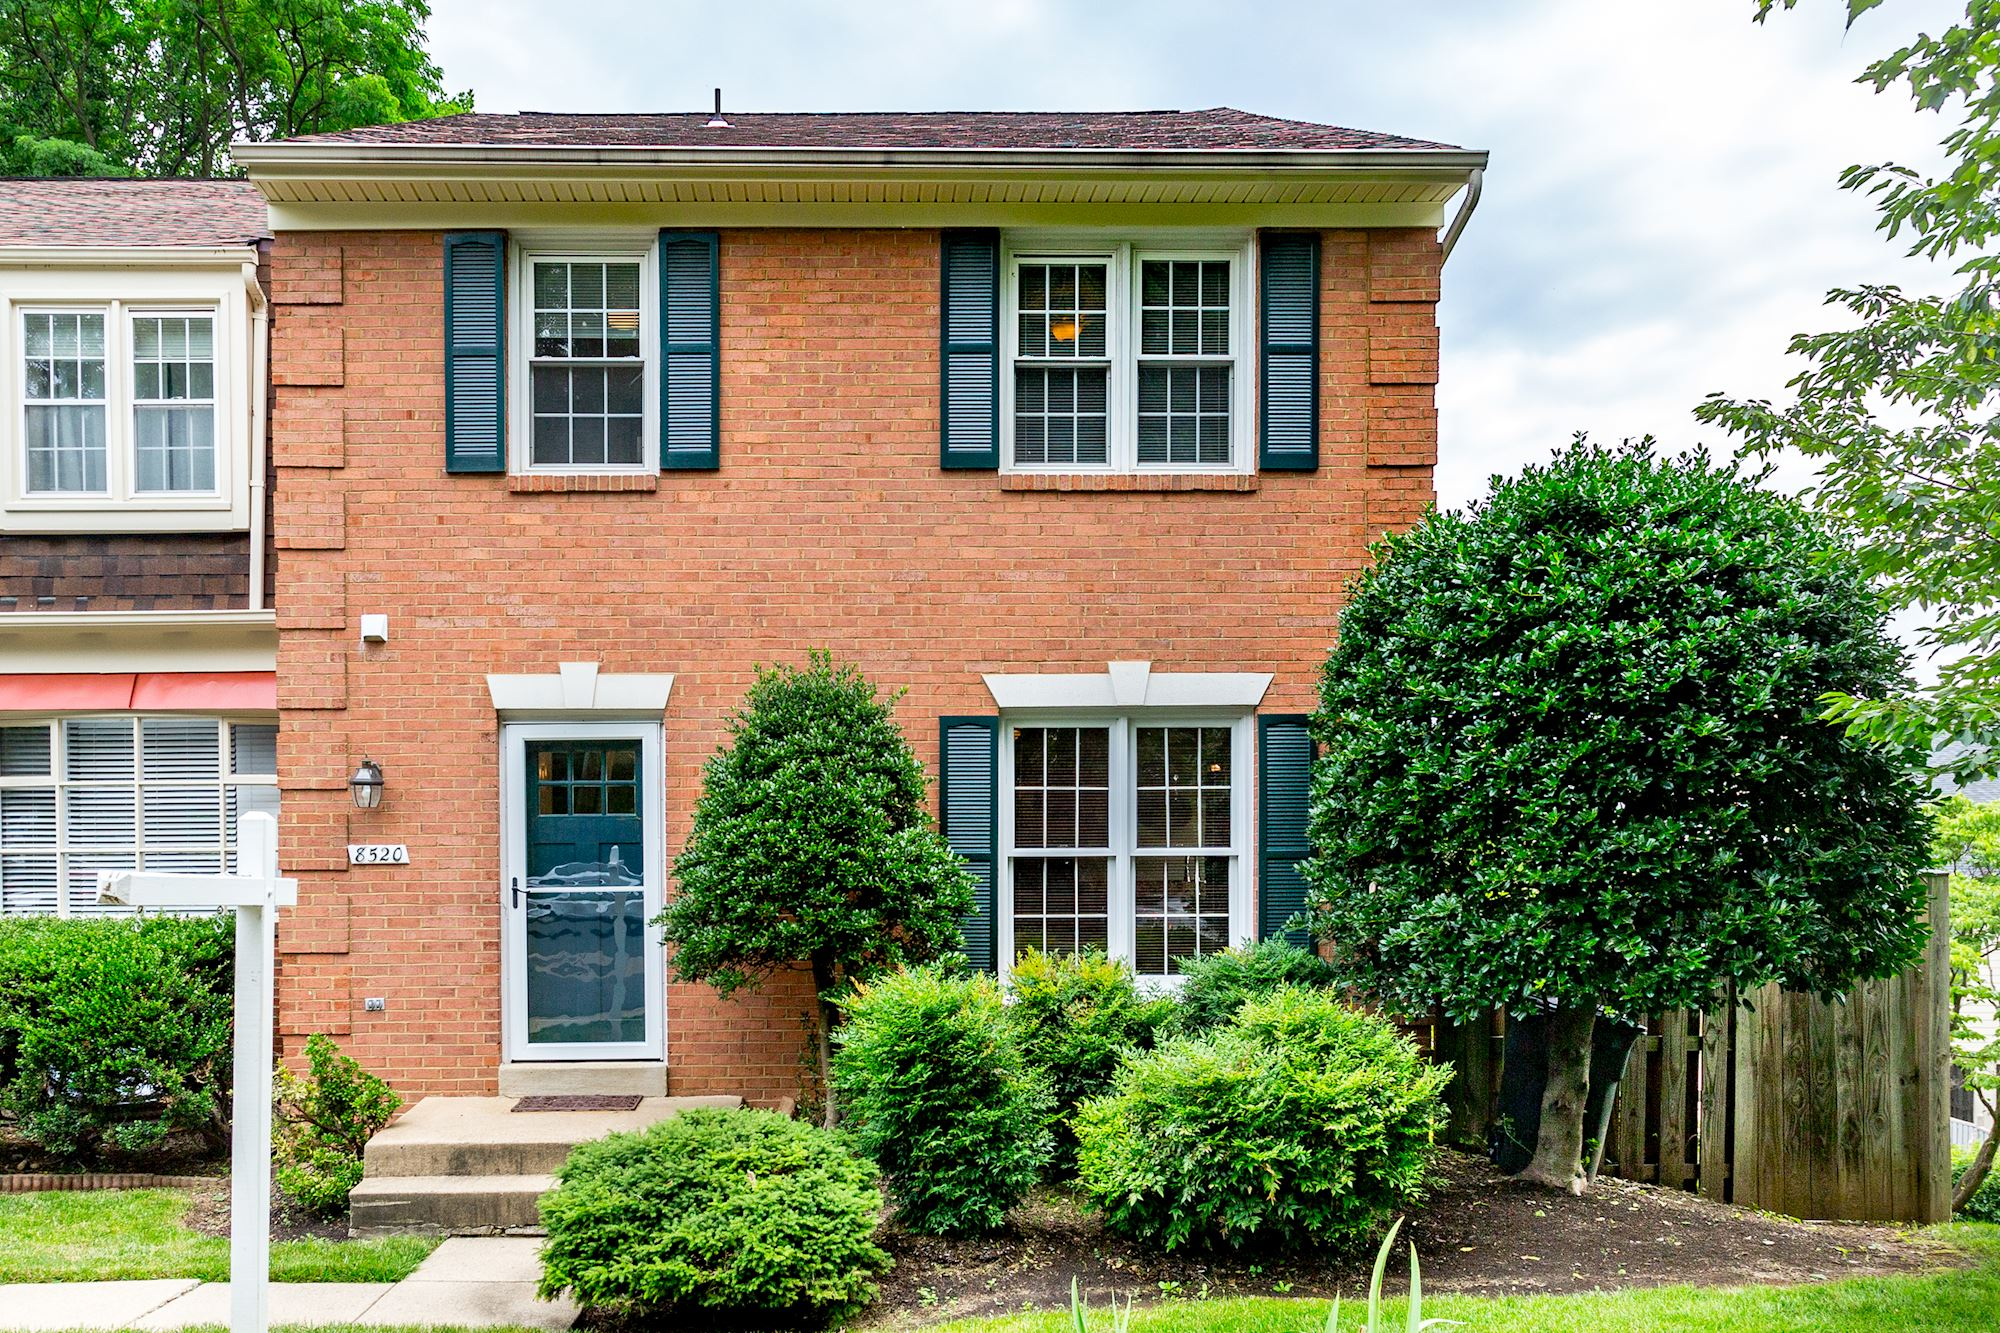 NEW LISTING: Beautiful End Unit Townhome in The Heart of Tyson